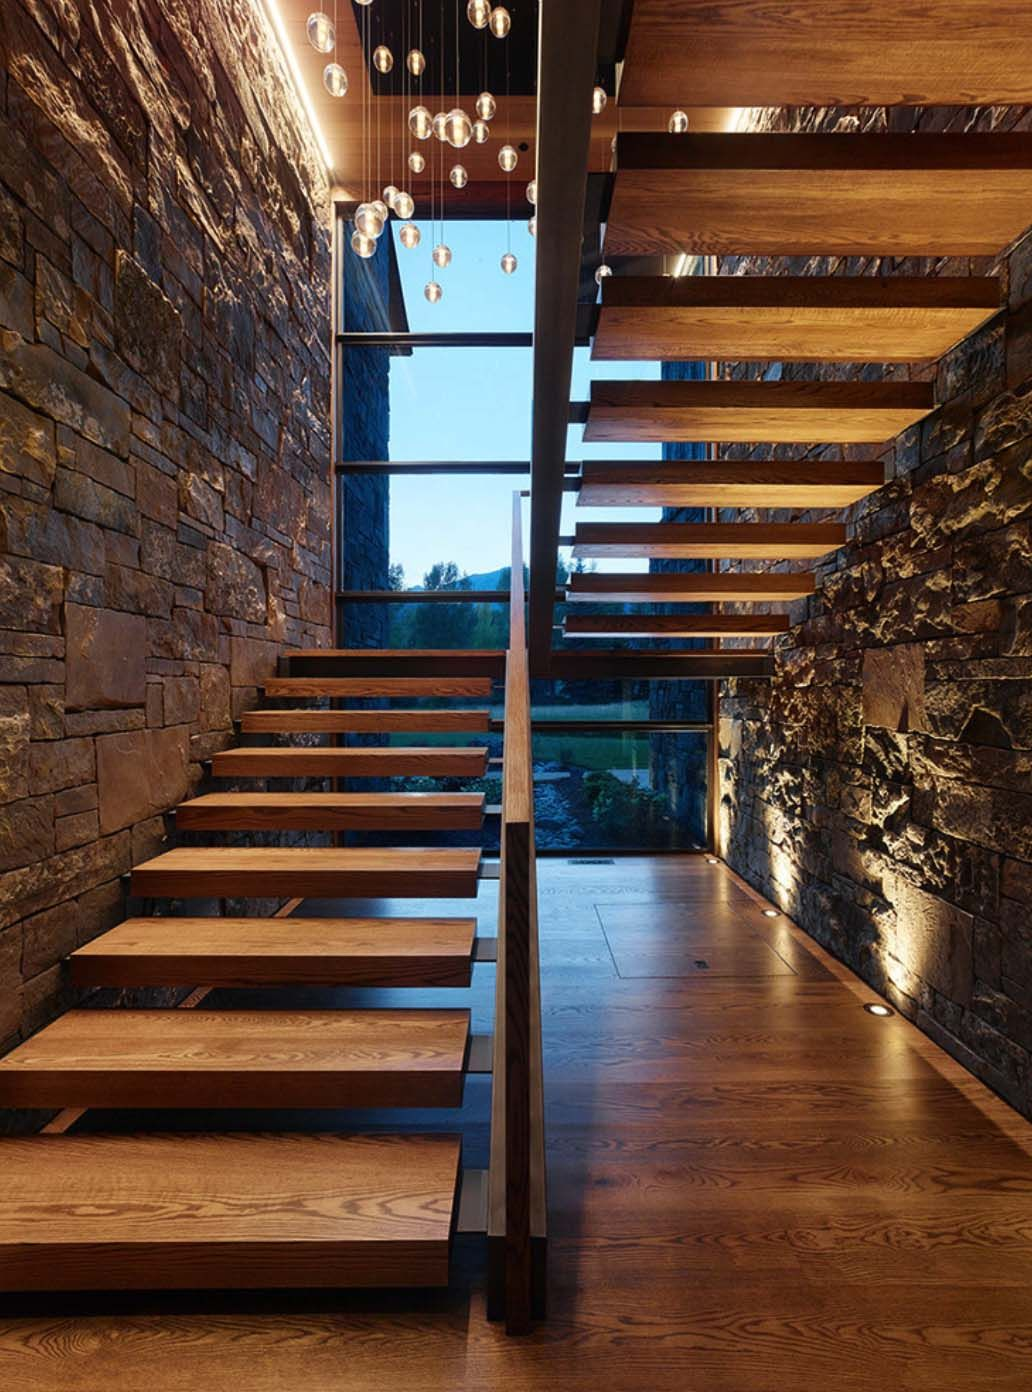 Rustic Mountian Stair Railings: A Mountain Dwelling In Wyoming With Modern-rustic Styling